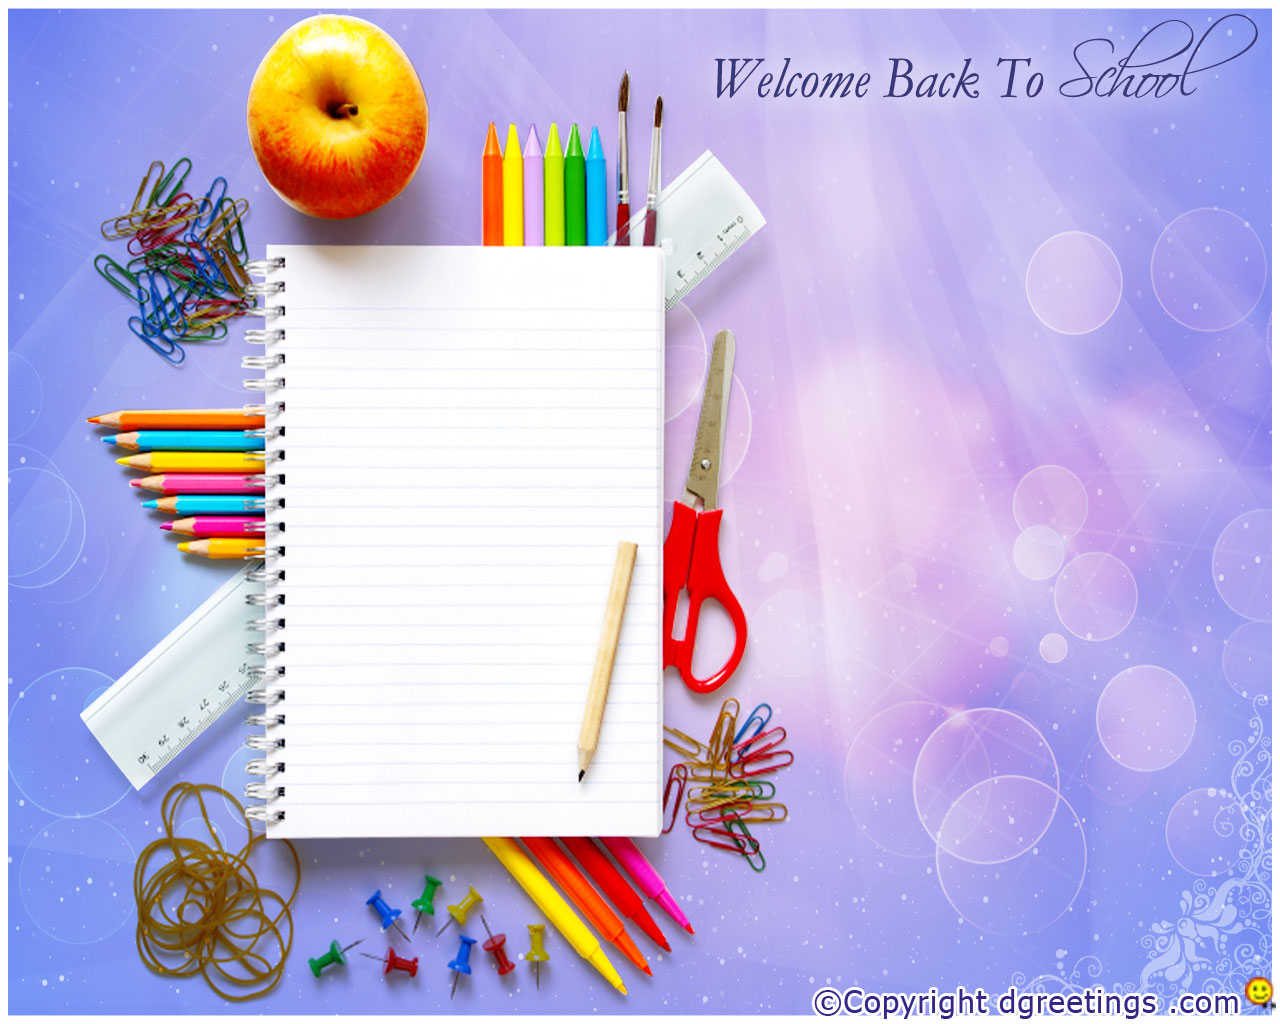 Back to School wallpapers Back to School Wallpapers Wallpapers 1280x1024